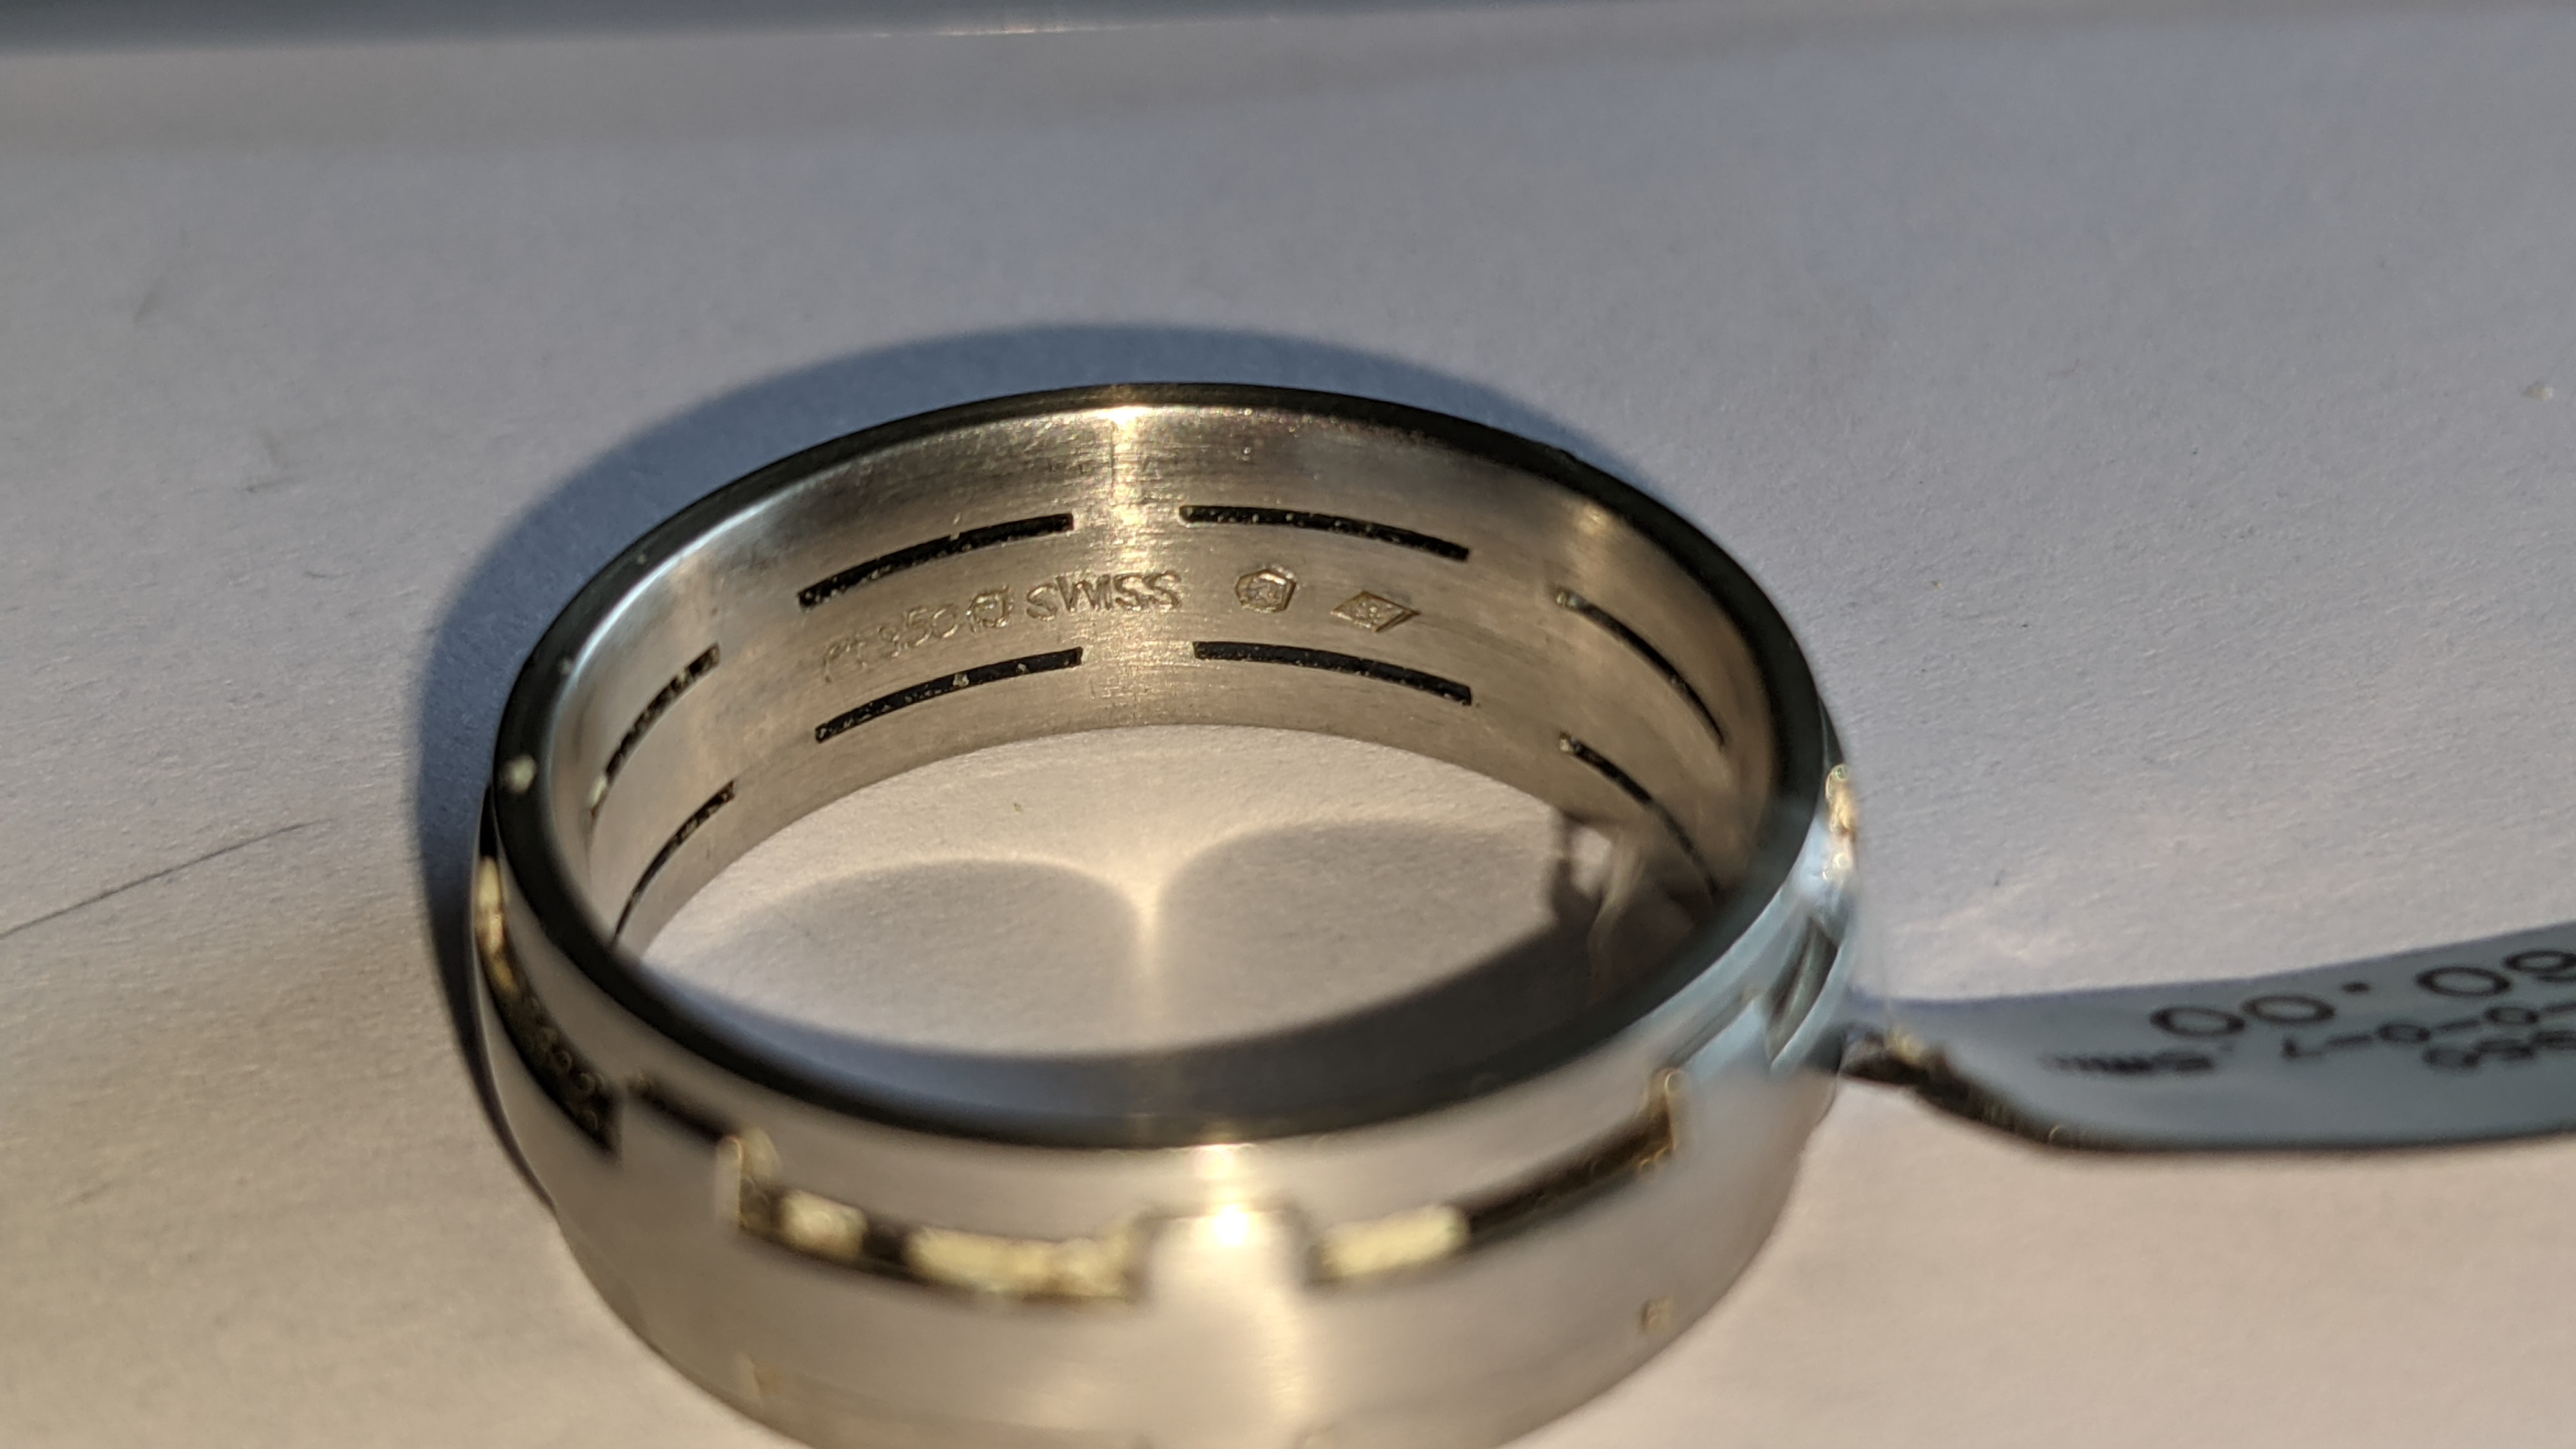 Platinum 950 ring in matt & polished finish, 7.5mm wide. RRP £2,960 - Image 10 of 15